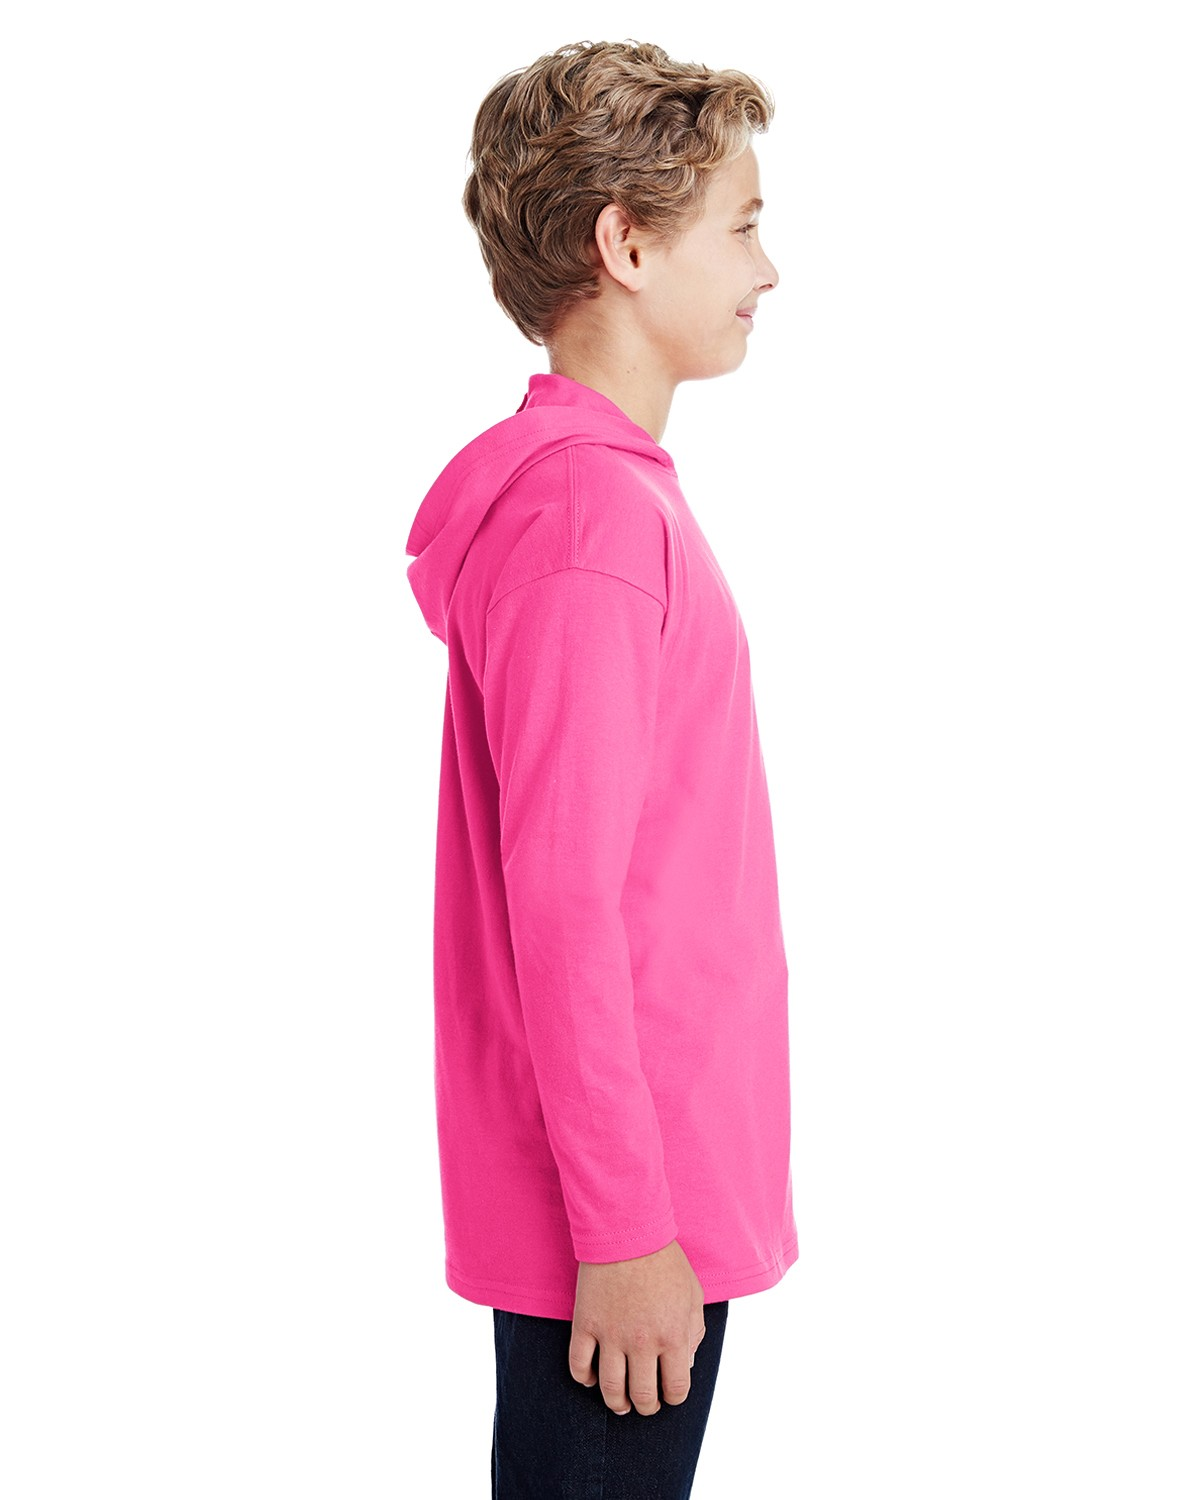 987B Anvil HOT PINK